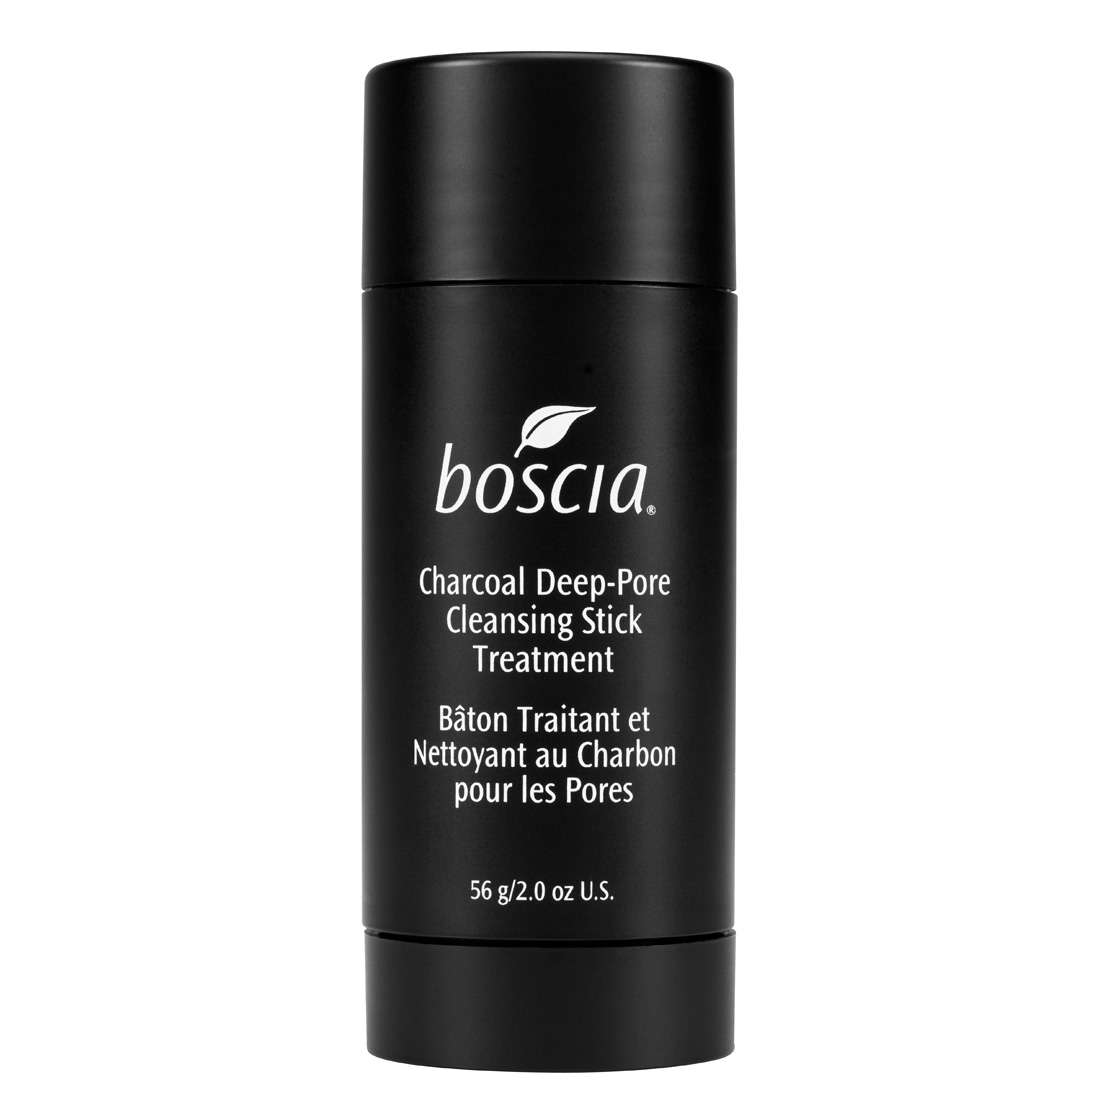 Charcoal Deep-Pore Cleansing Stick Treatment - Not only does this formula have bamboo charcoal to draw out impurities from your pores, it also has glycolic acid to reduce the look of fine lines over time by increasing skin cell turnover. Beware ye of sensitive skin or dry textures, this product is not for you! It will make your face irritated AF. Combo and oily skin peeps? This one's for you.